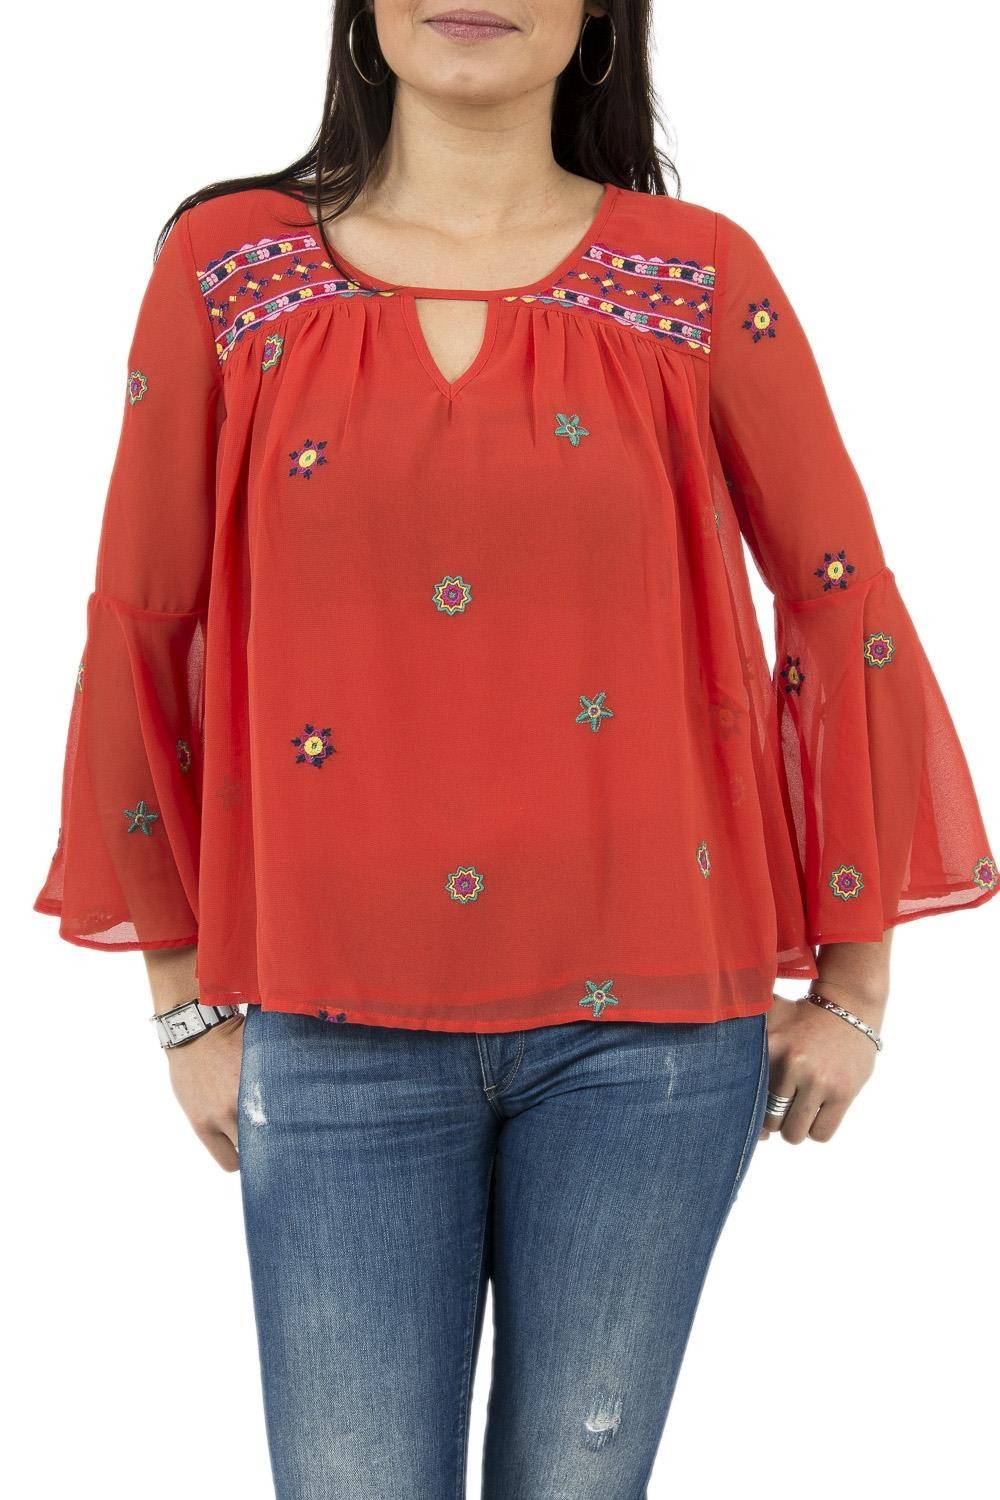 tee shirt manches longues desigual 18swbw51 karissa rouge